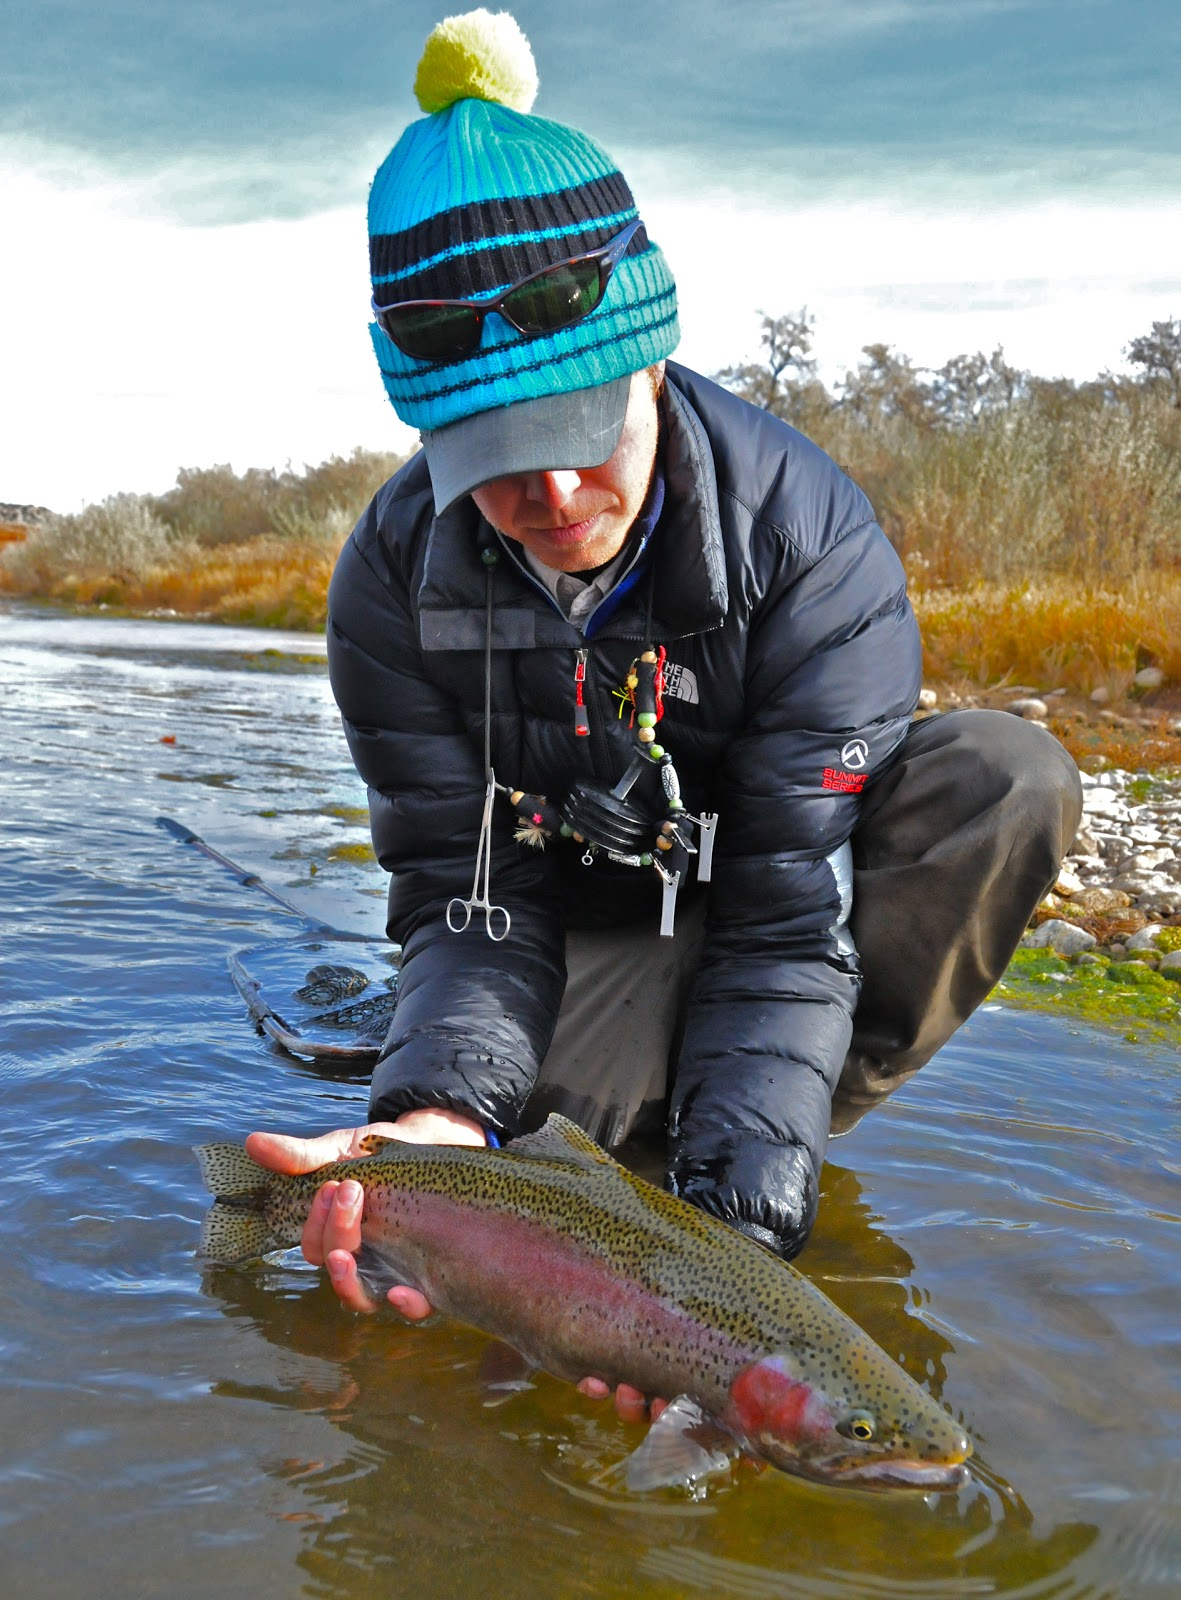 Jackson hole fly fishing report guide retreat november 1 for Fly fishing jackson hole